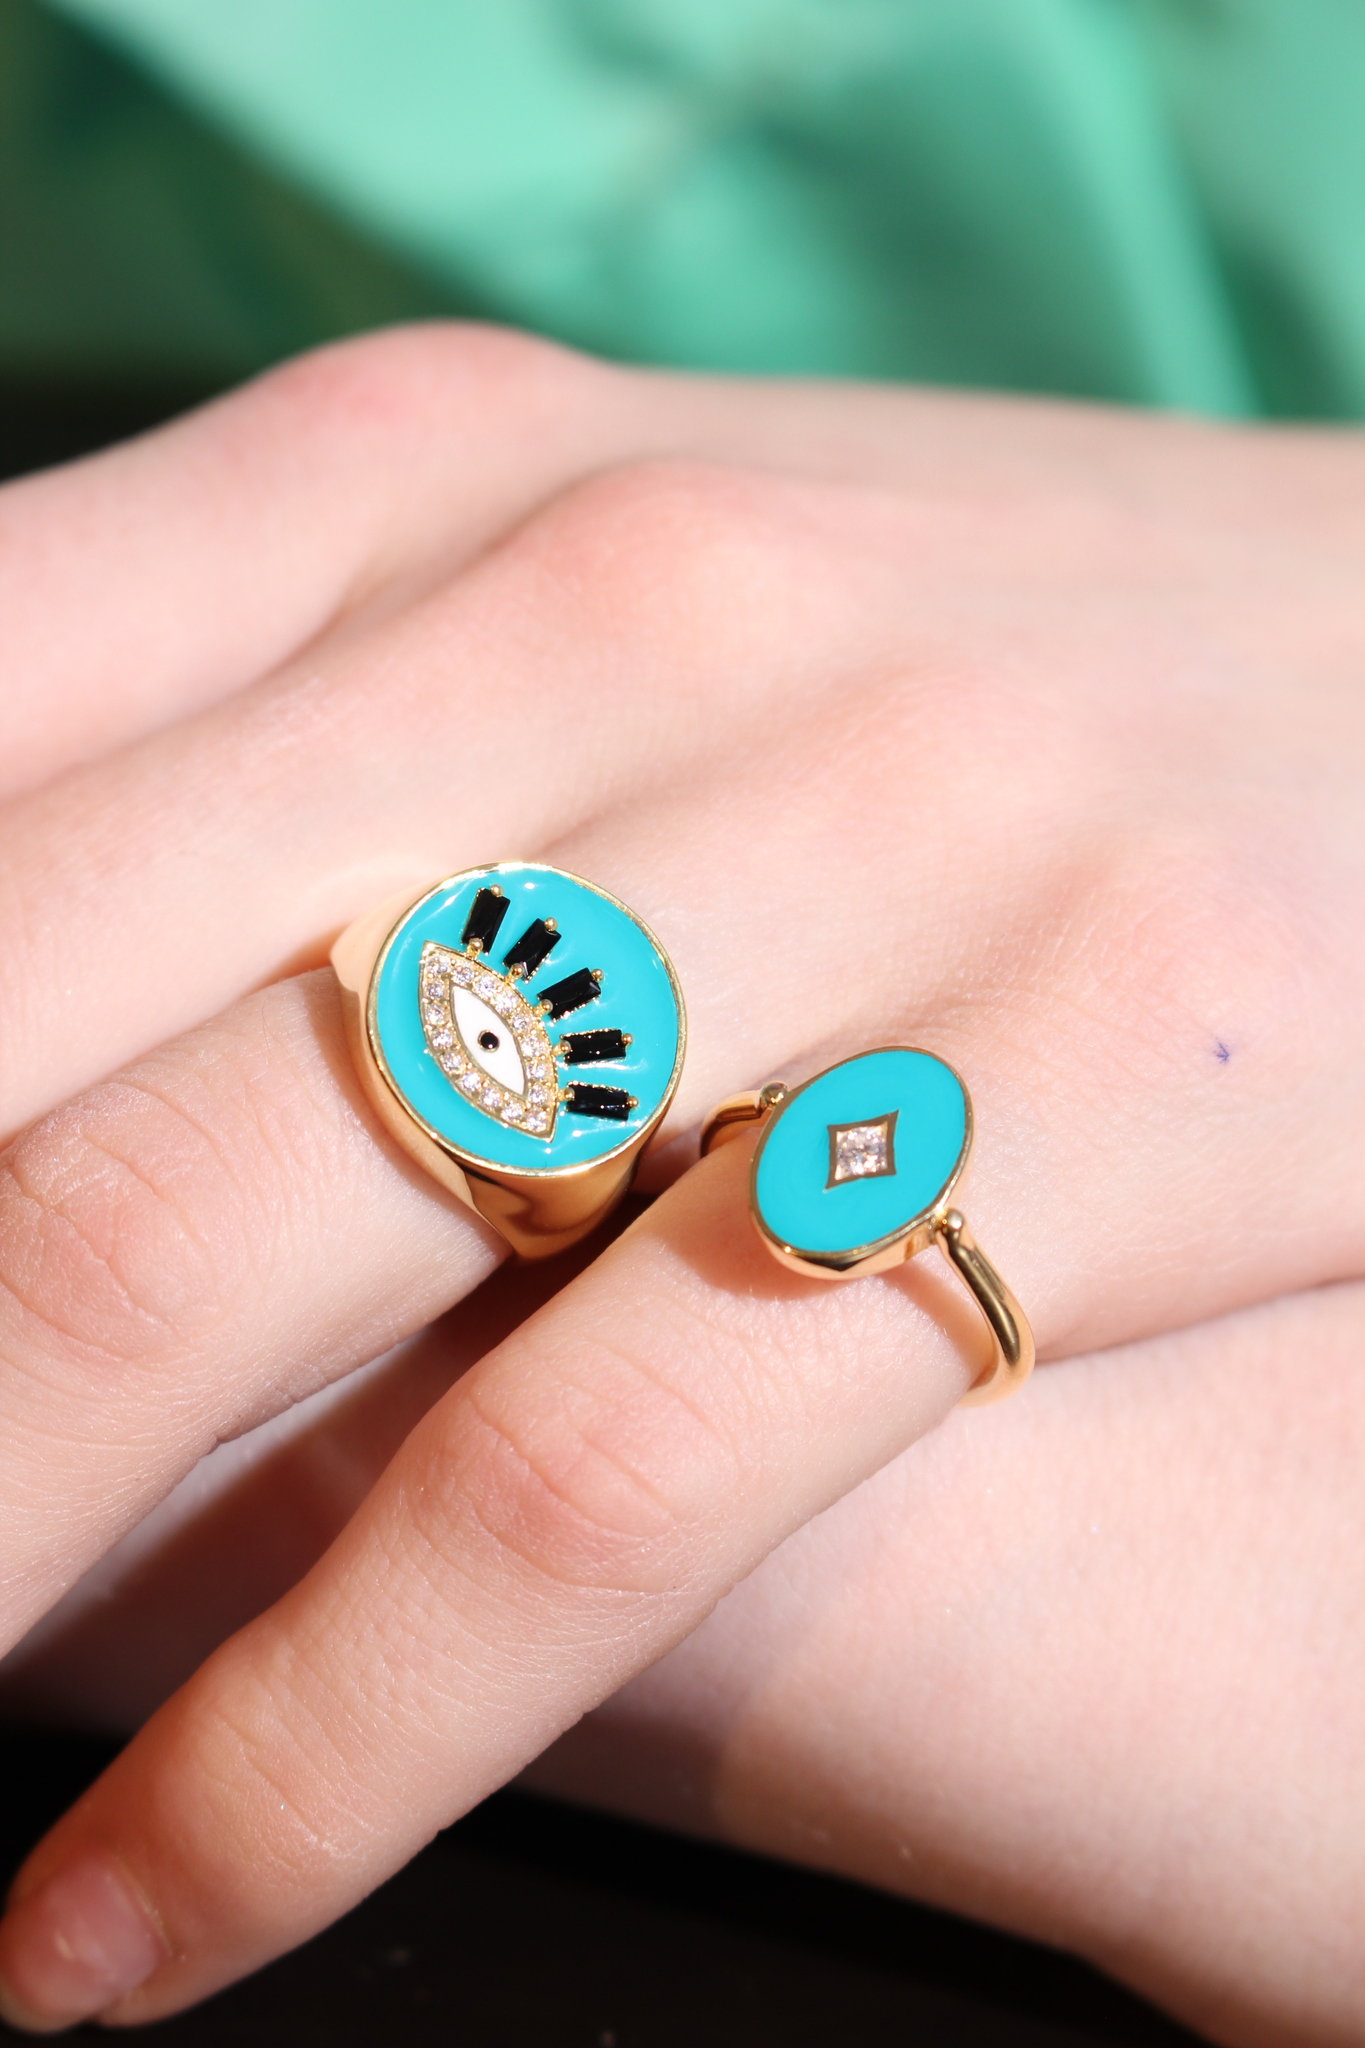 The Eye signet ring in gold plated silver with light blue enamel